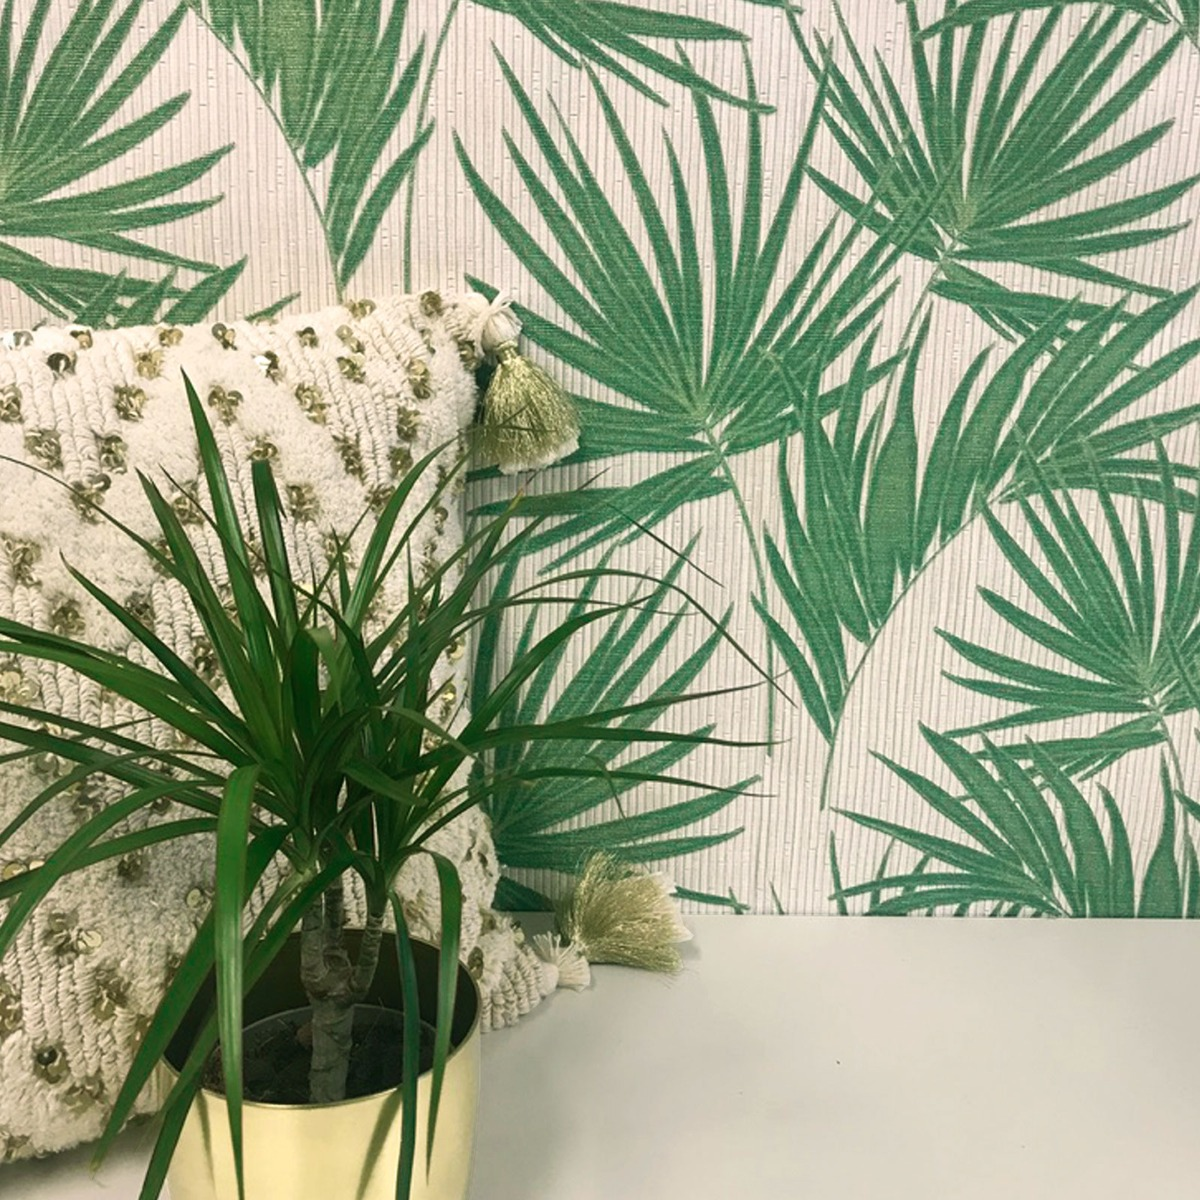 Aurora Palm Wallpaper Green / Cream Belgravia 4990